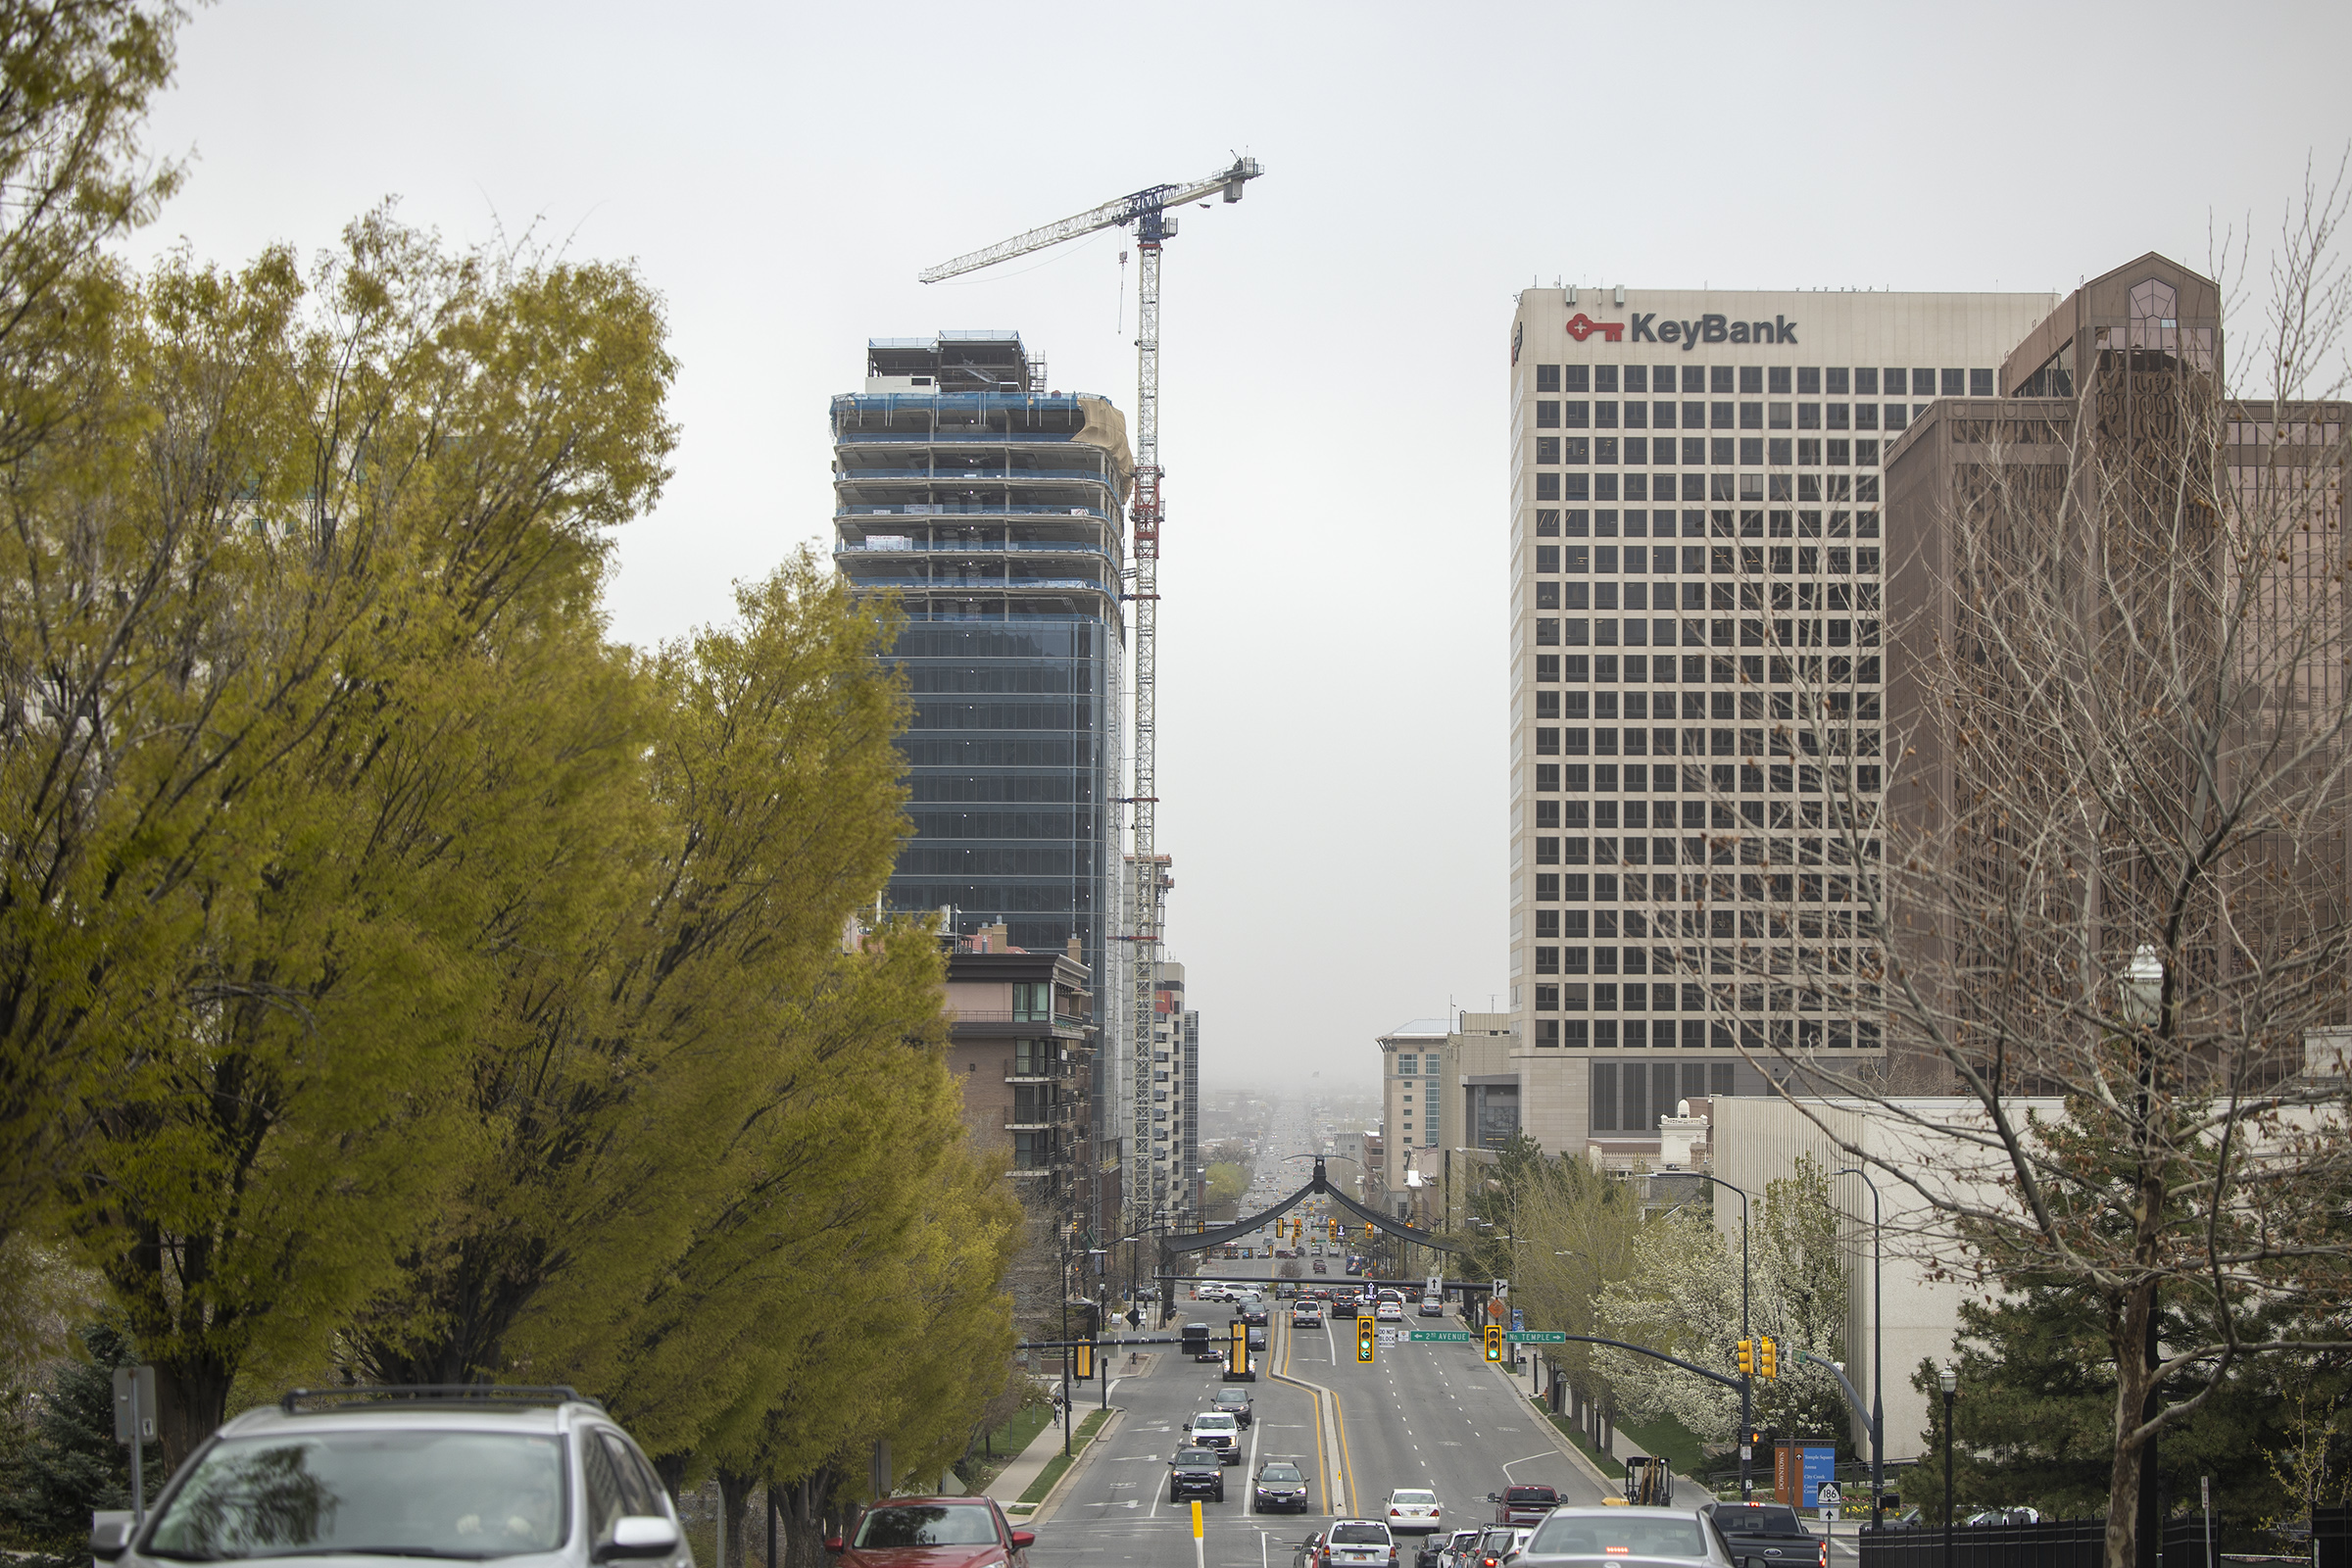 High winds kick up dust along the Wasatch Front in Salt Lake City on Monday, April 19, 2021.